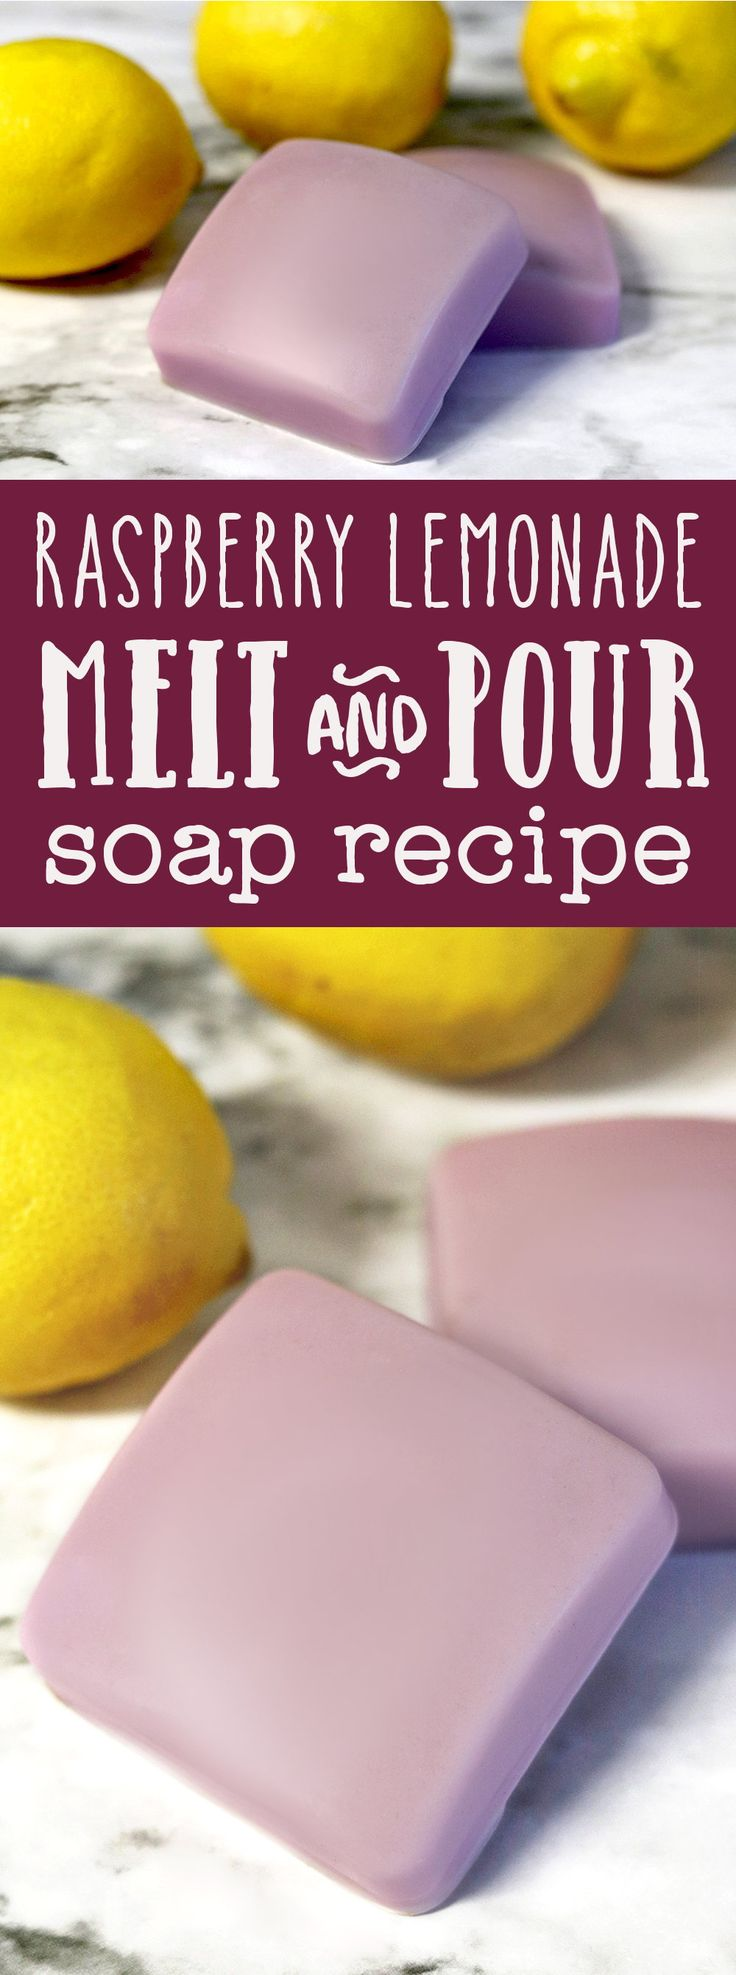 This raspberry lemonade melt and pour soap recipe takes just 10 minutes to make, making it quick, easy, and inexpensive craft. Plus learn about melt and pour soapmaking additives you can use to create your own custom melt and pour soap recipes! #soap #soapmaking #soaprecipe #meltandpoursoap #diy #crafts #soapcrafting